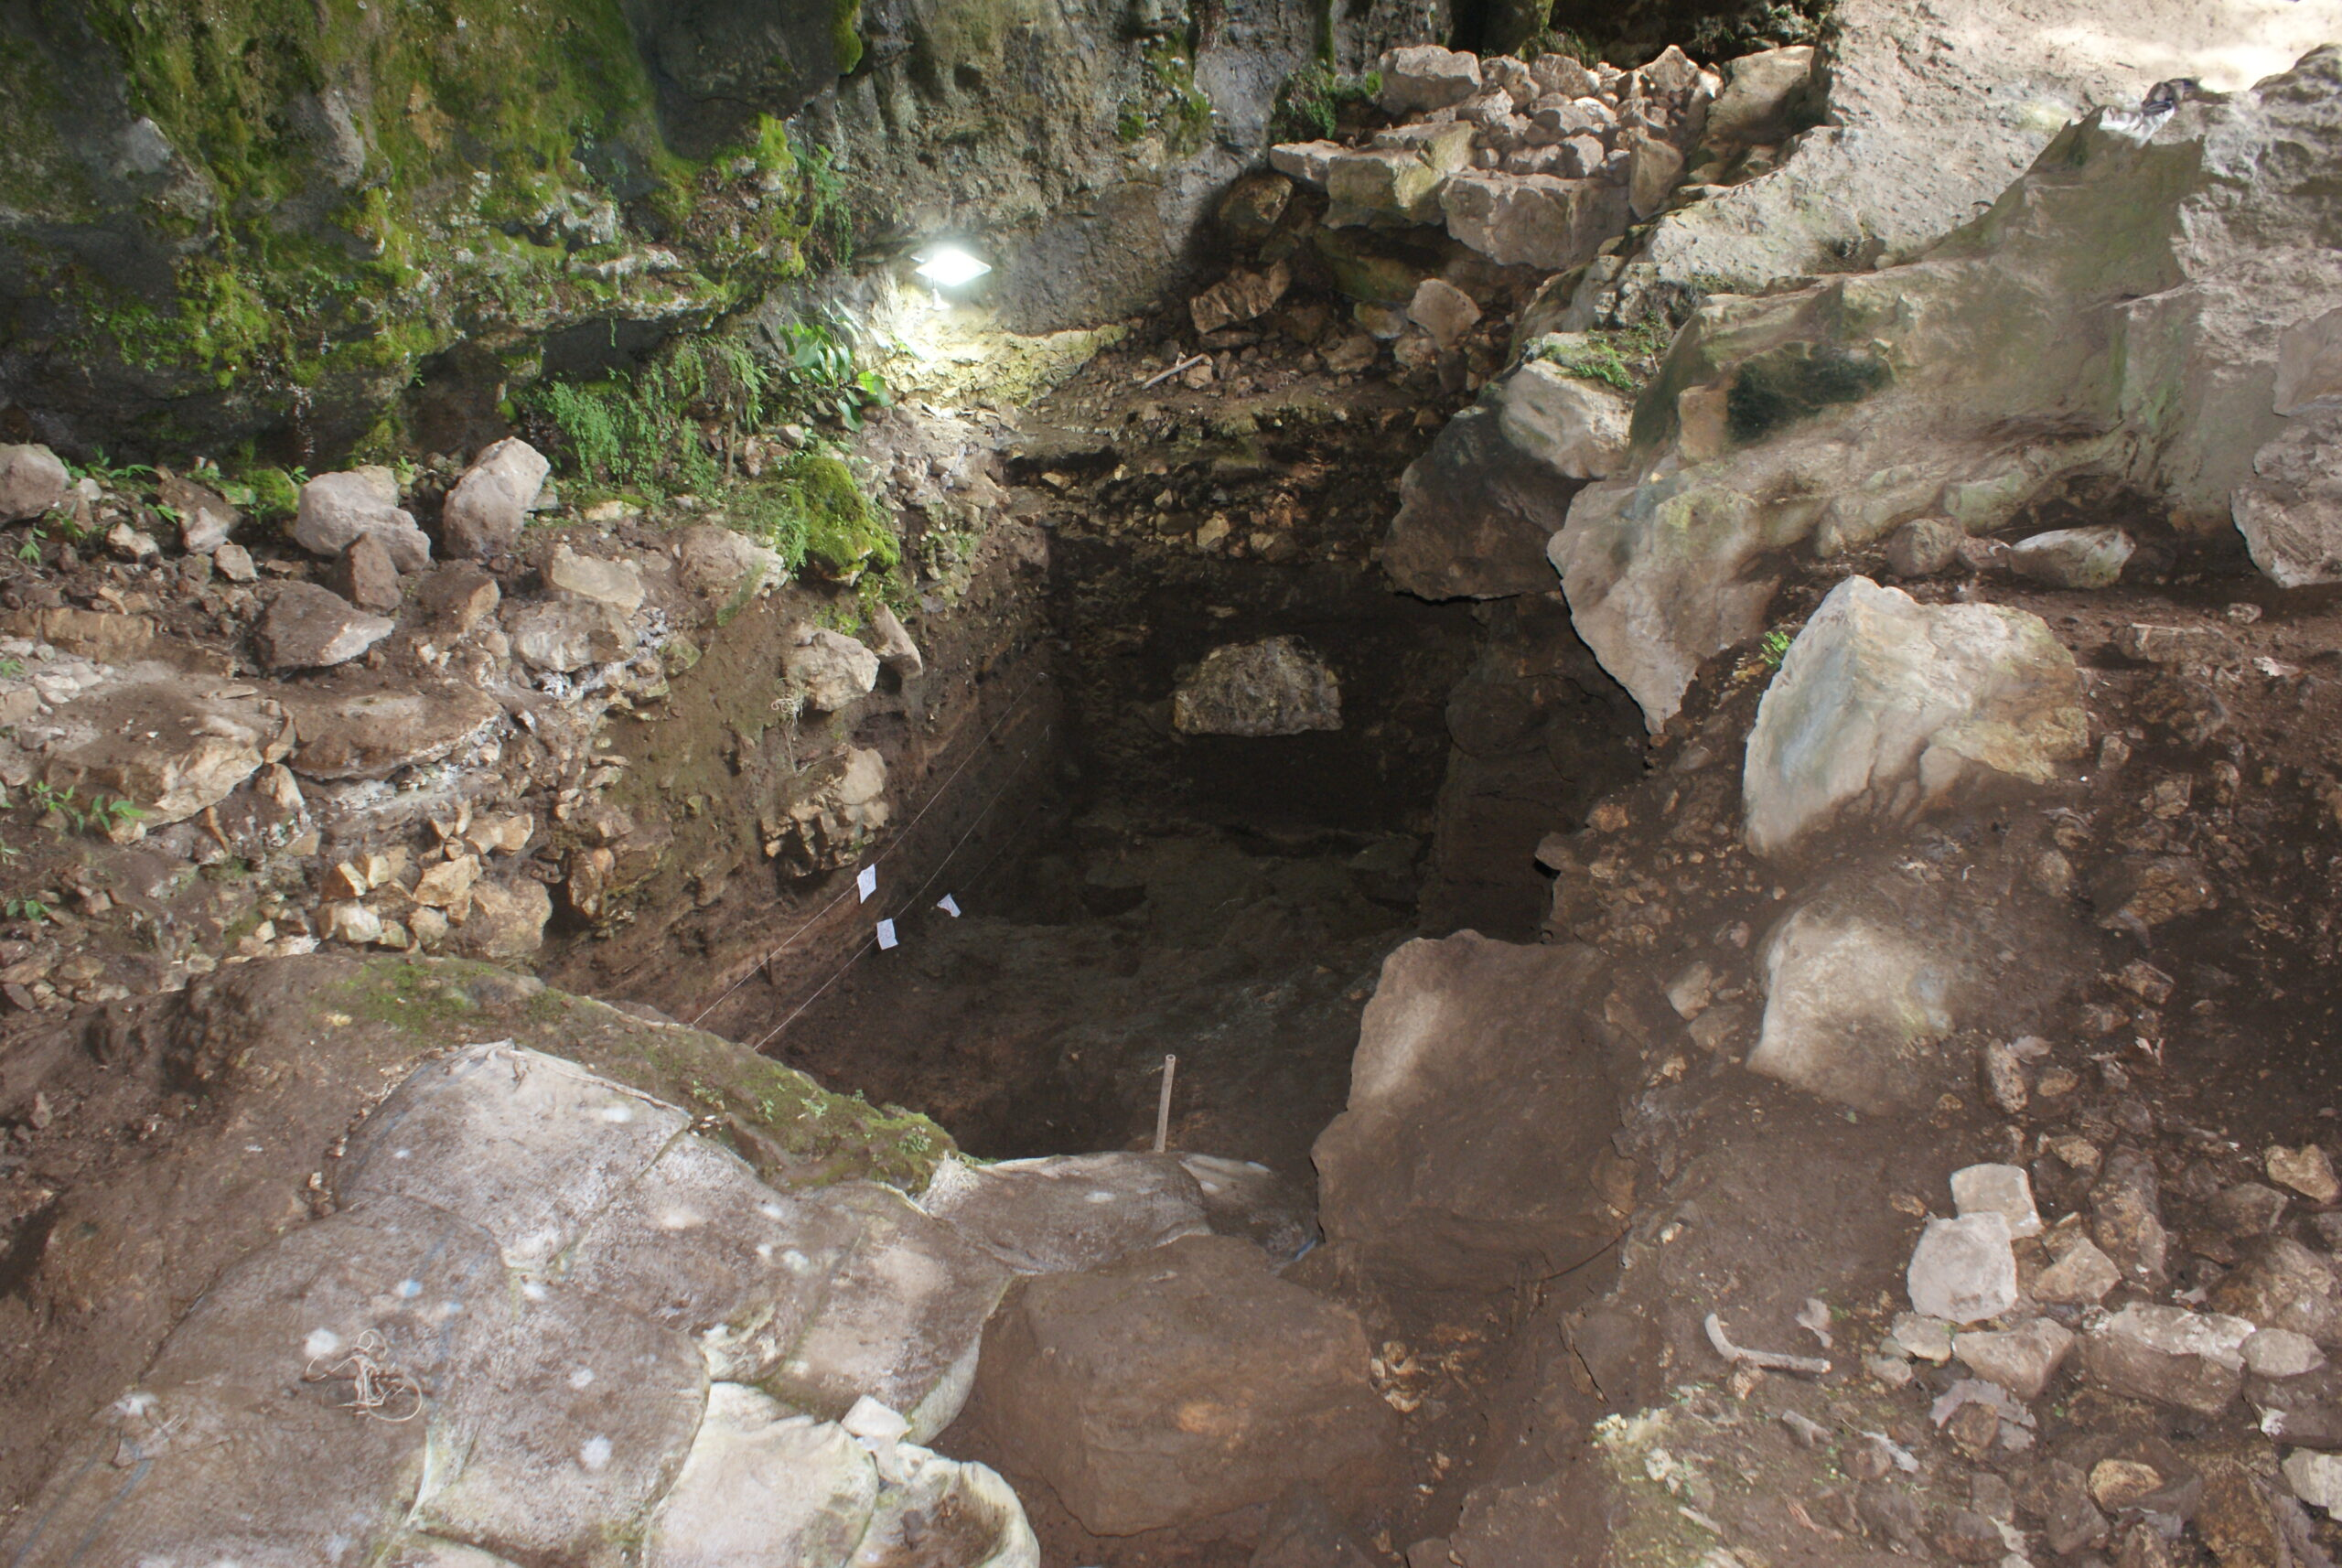 25,000-year-old human genome recovered from cave soil